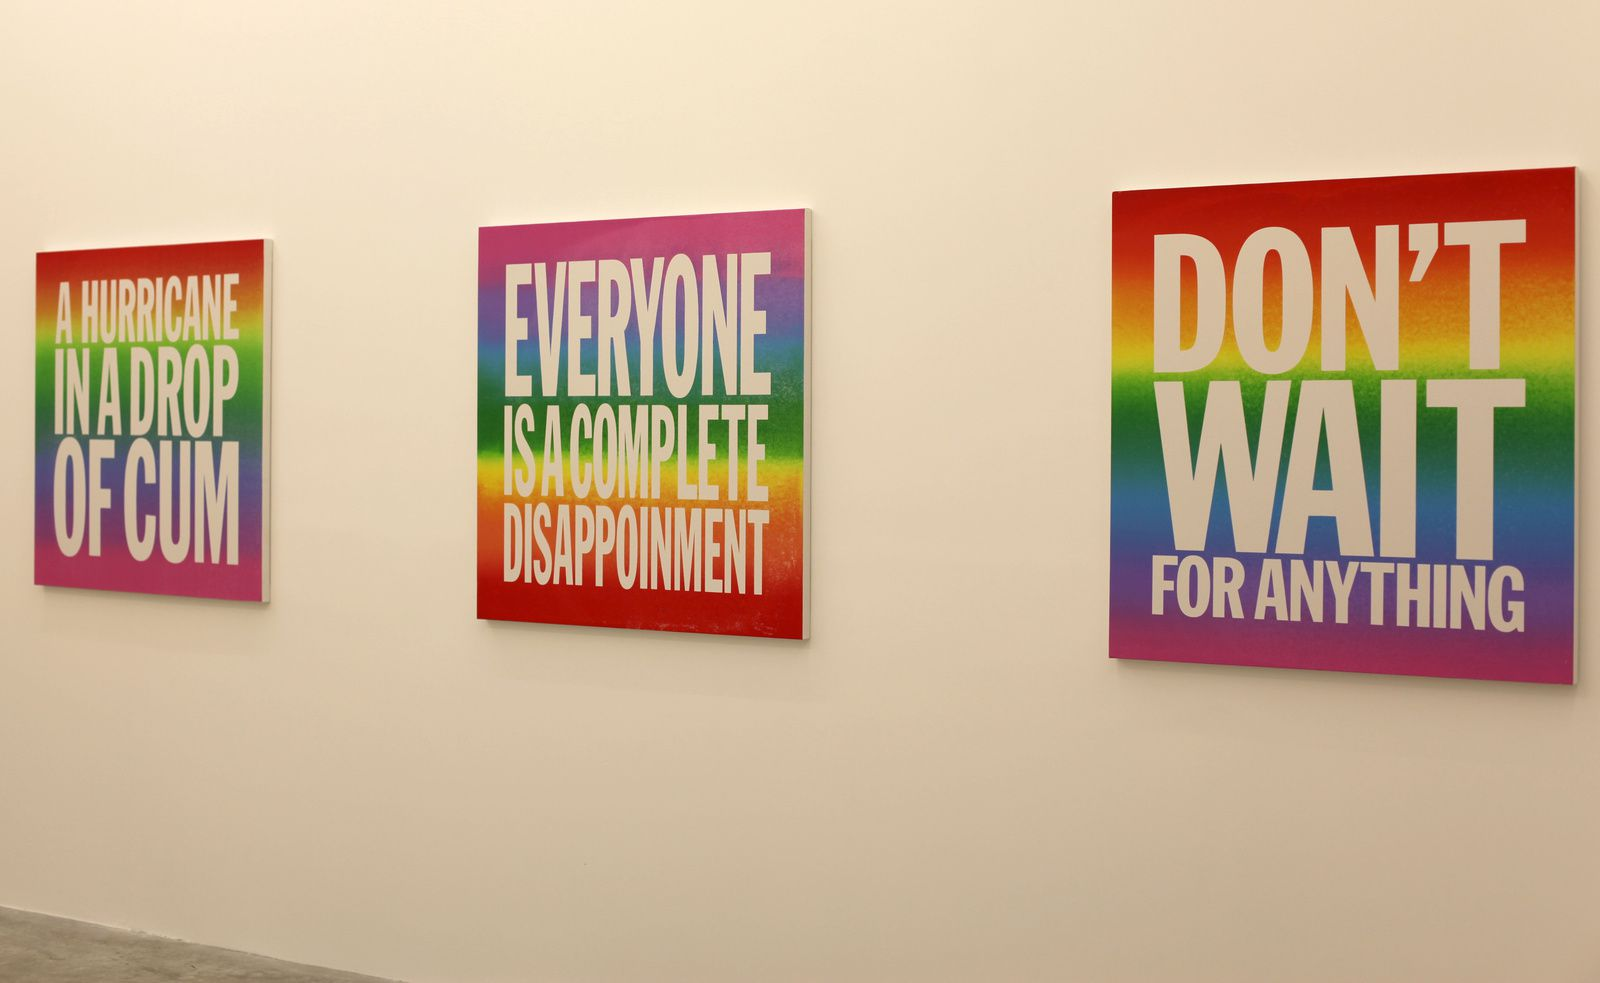 """Hurricane in a drop of cum"" ""Everyone is a complete disappoinment"" ""Don't wait for anything"",  2015 de John Giorno - Courtesy Almine Rech Gallery © Photo Éric Simon"